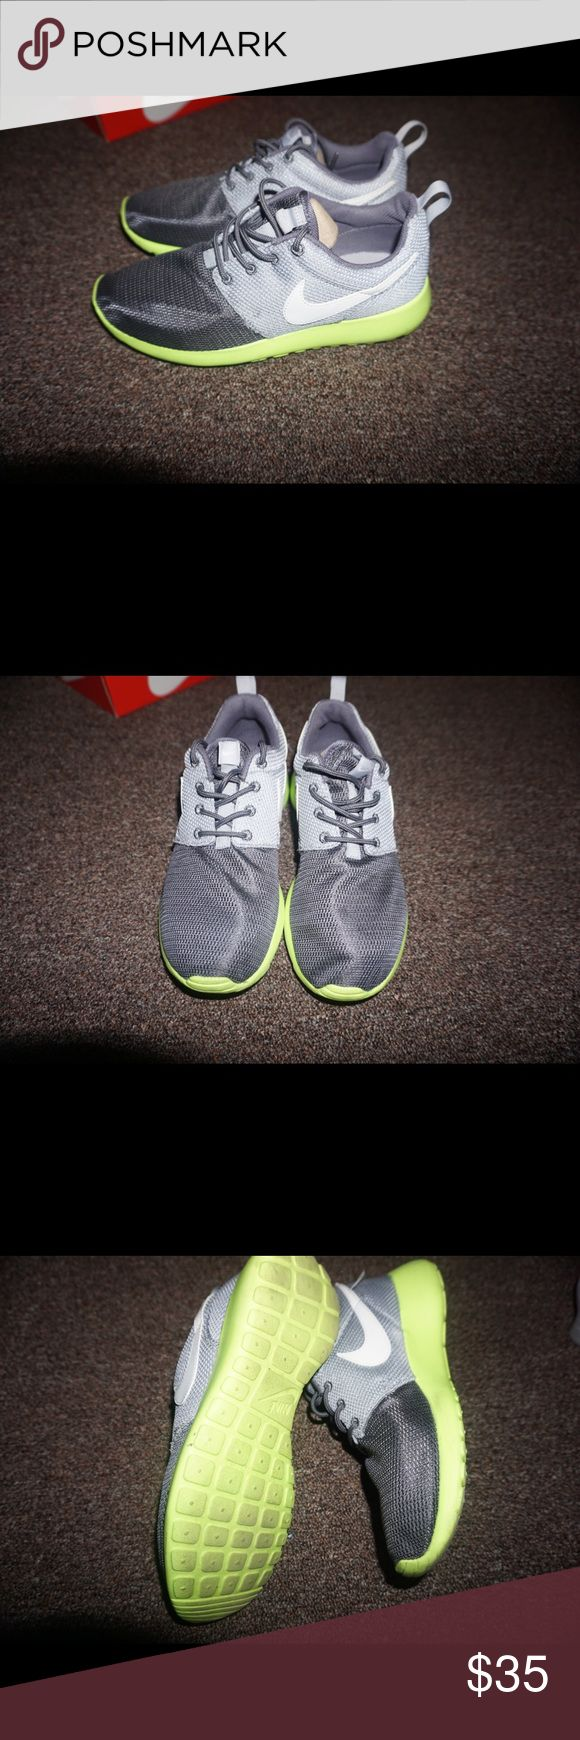 Nike Roshe Runs Size 4.5 = 6.5 Womens Worn once, no box Nike Shoes Sneakers